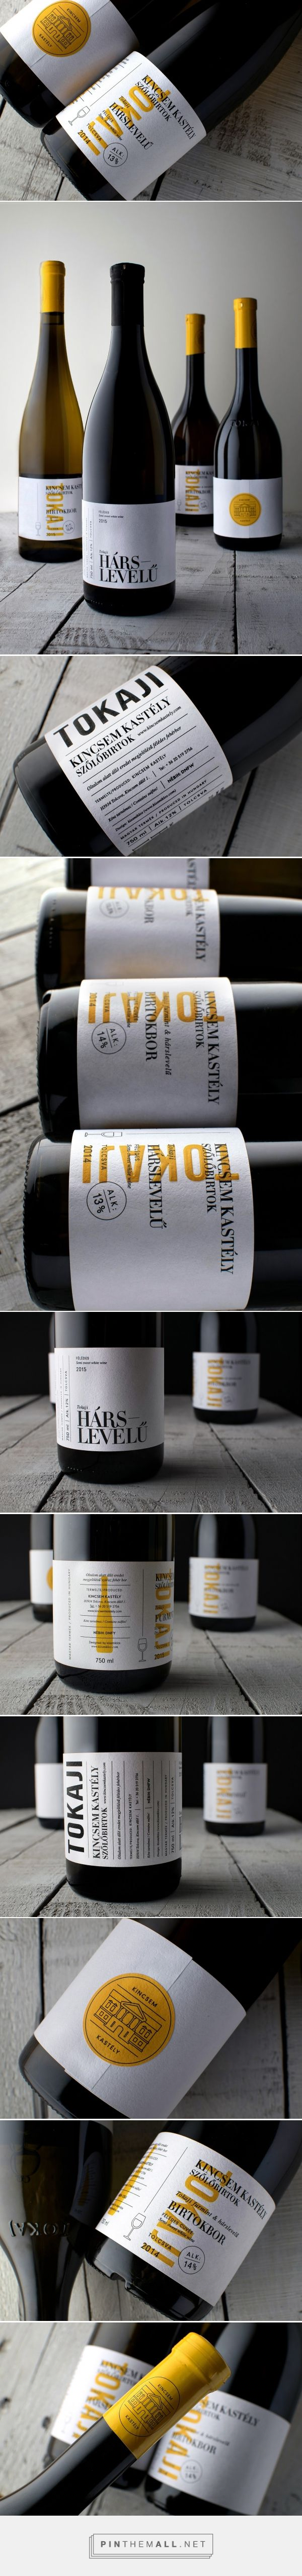 Kincsem Kastély Winery - Packaging of the World - Creative Package Design Gallery - http://www.packagingoftheworld.com/2017/01/kincsem-kastely-winery.html